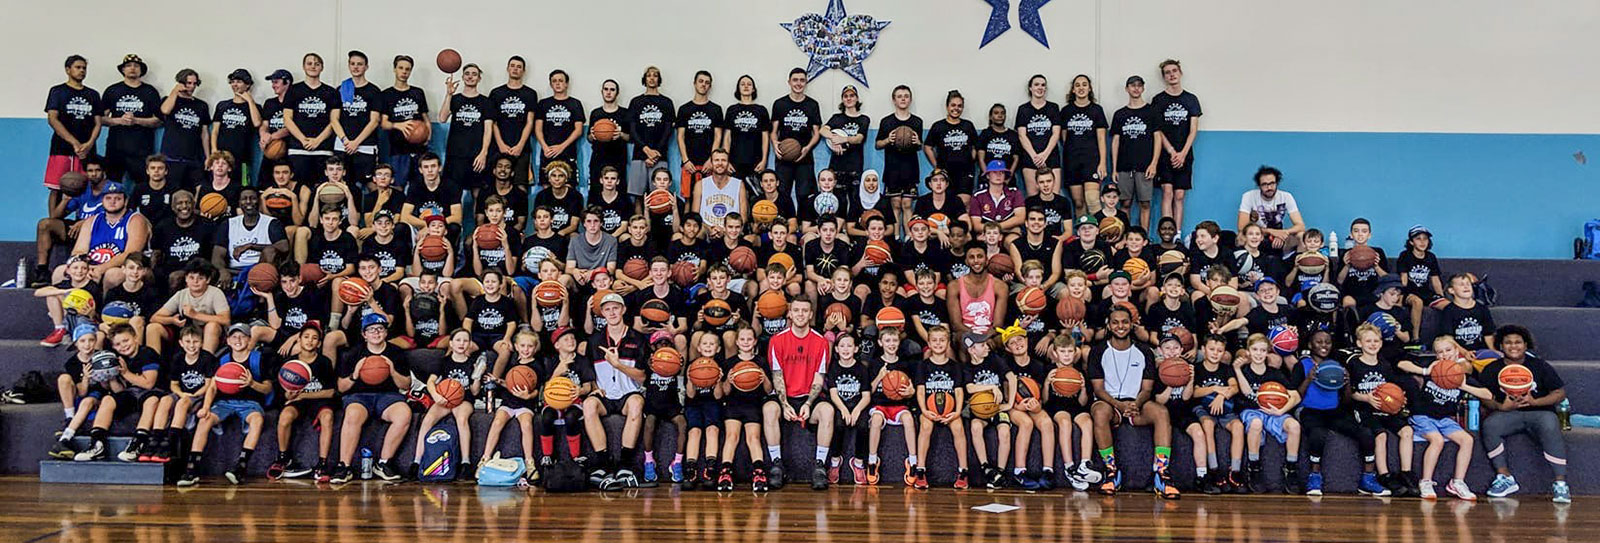 2019 Toowoomba Supercamp group shot